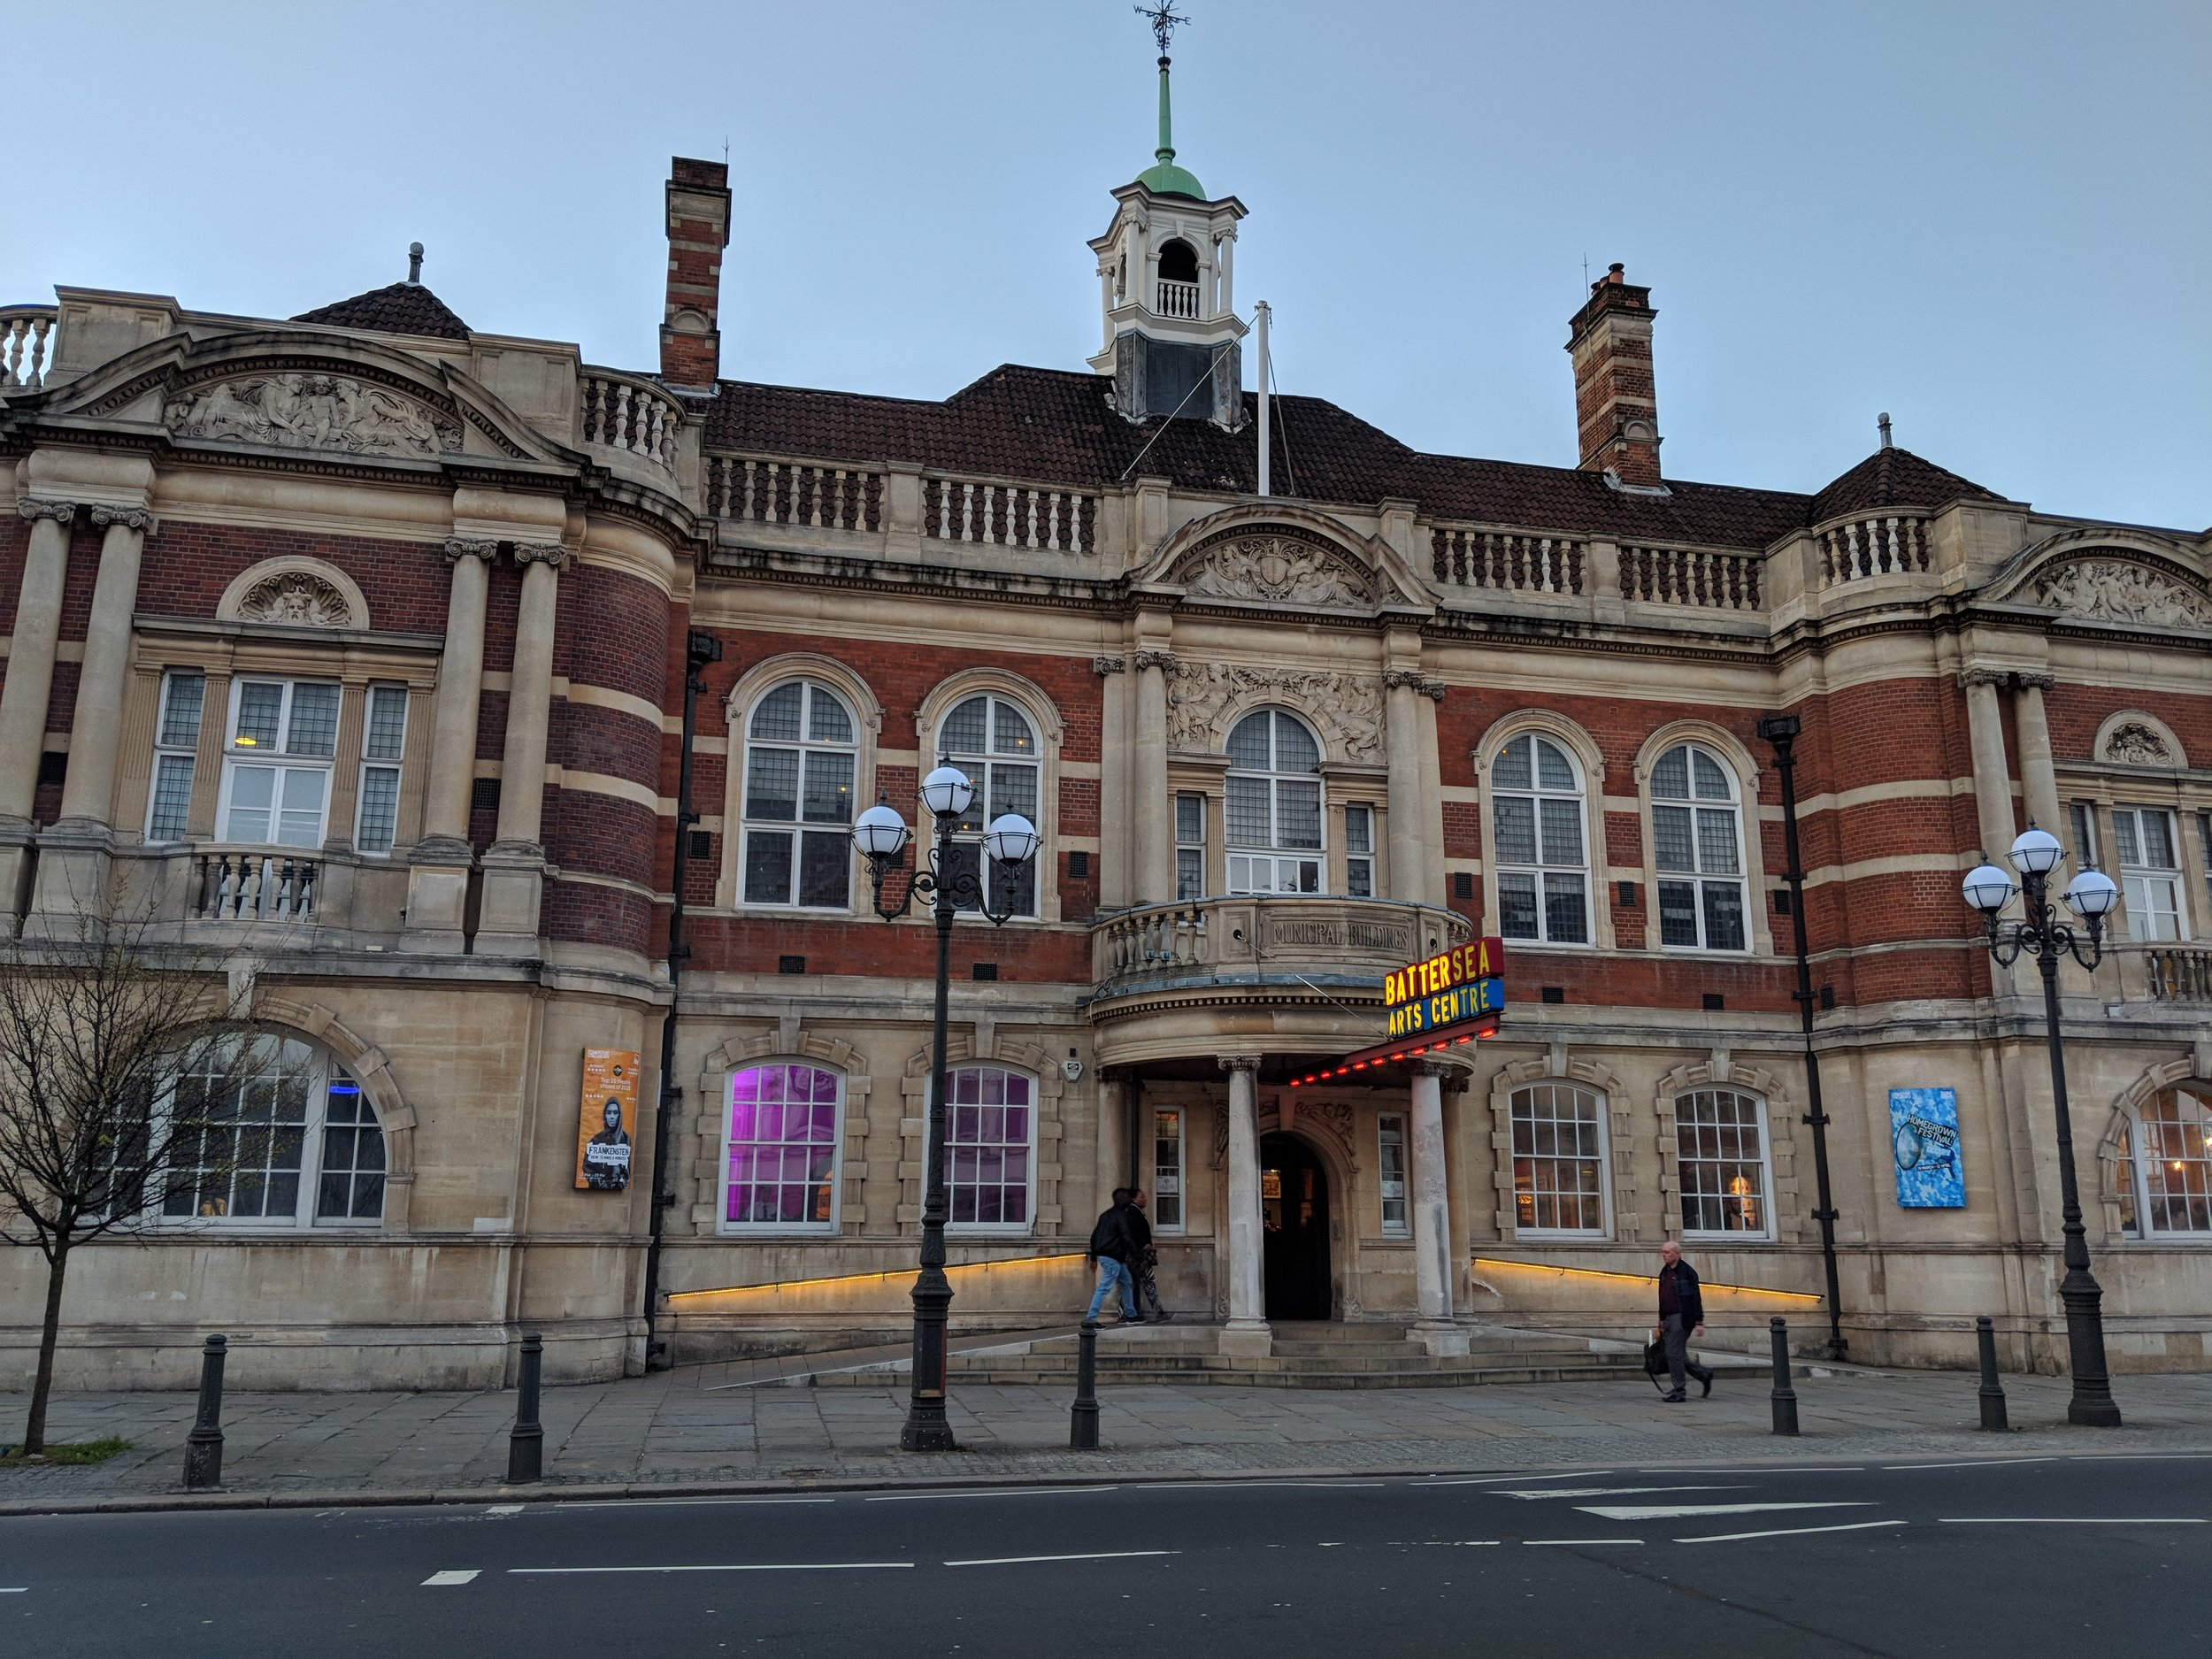 Battersea Arts Centre(Grand Hall) - visited 29/03/2019